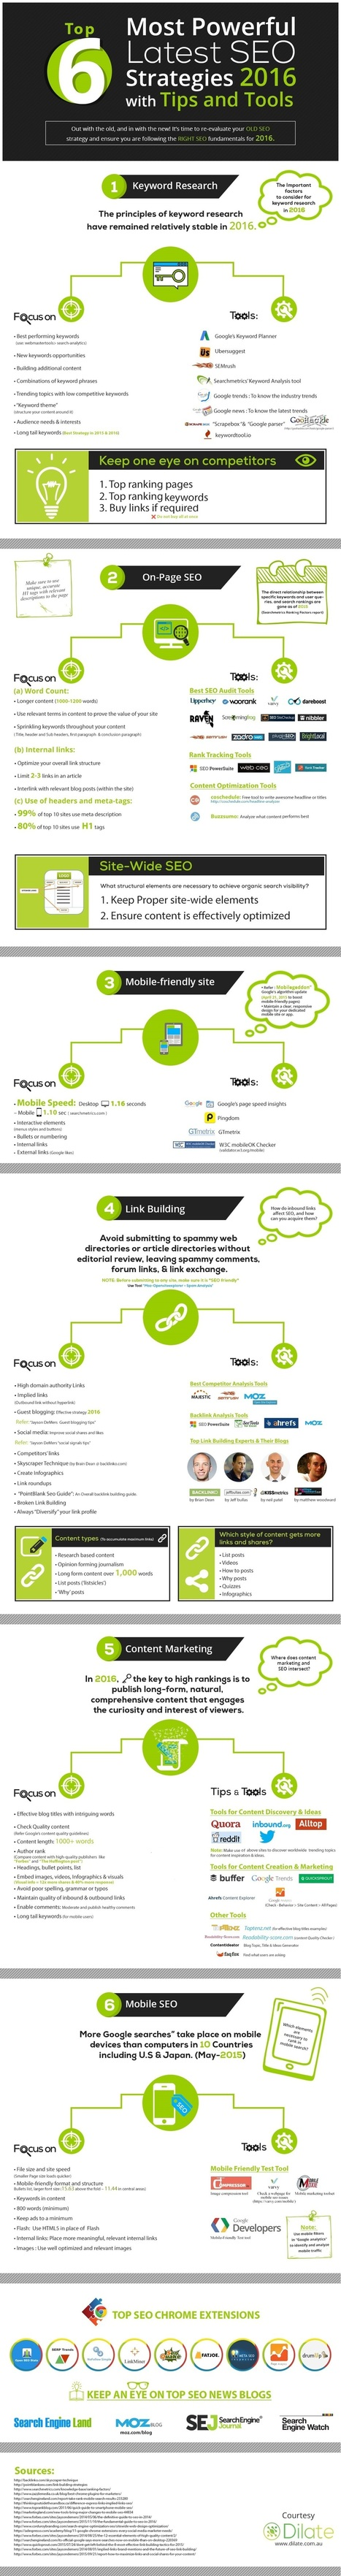 Ultimate SEO Tool Kit for 6 Key Tasks (Infographic) | Brand Storytelling | Scoop.it